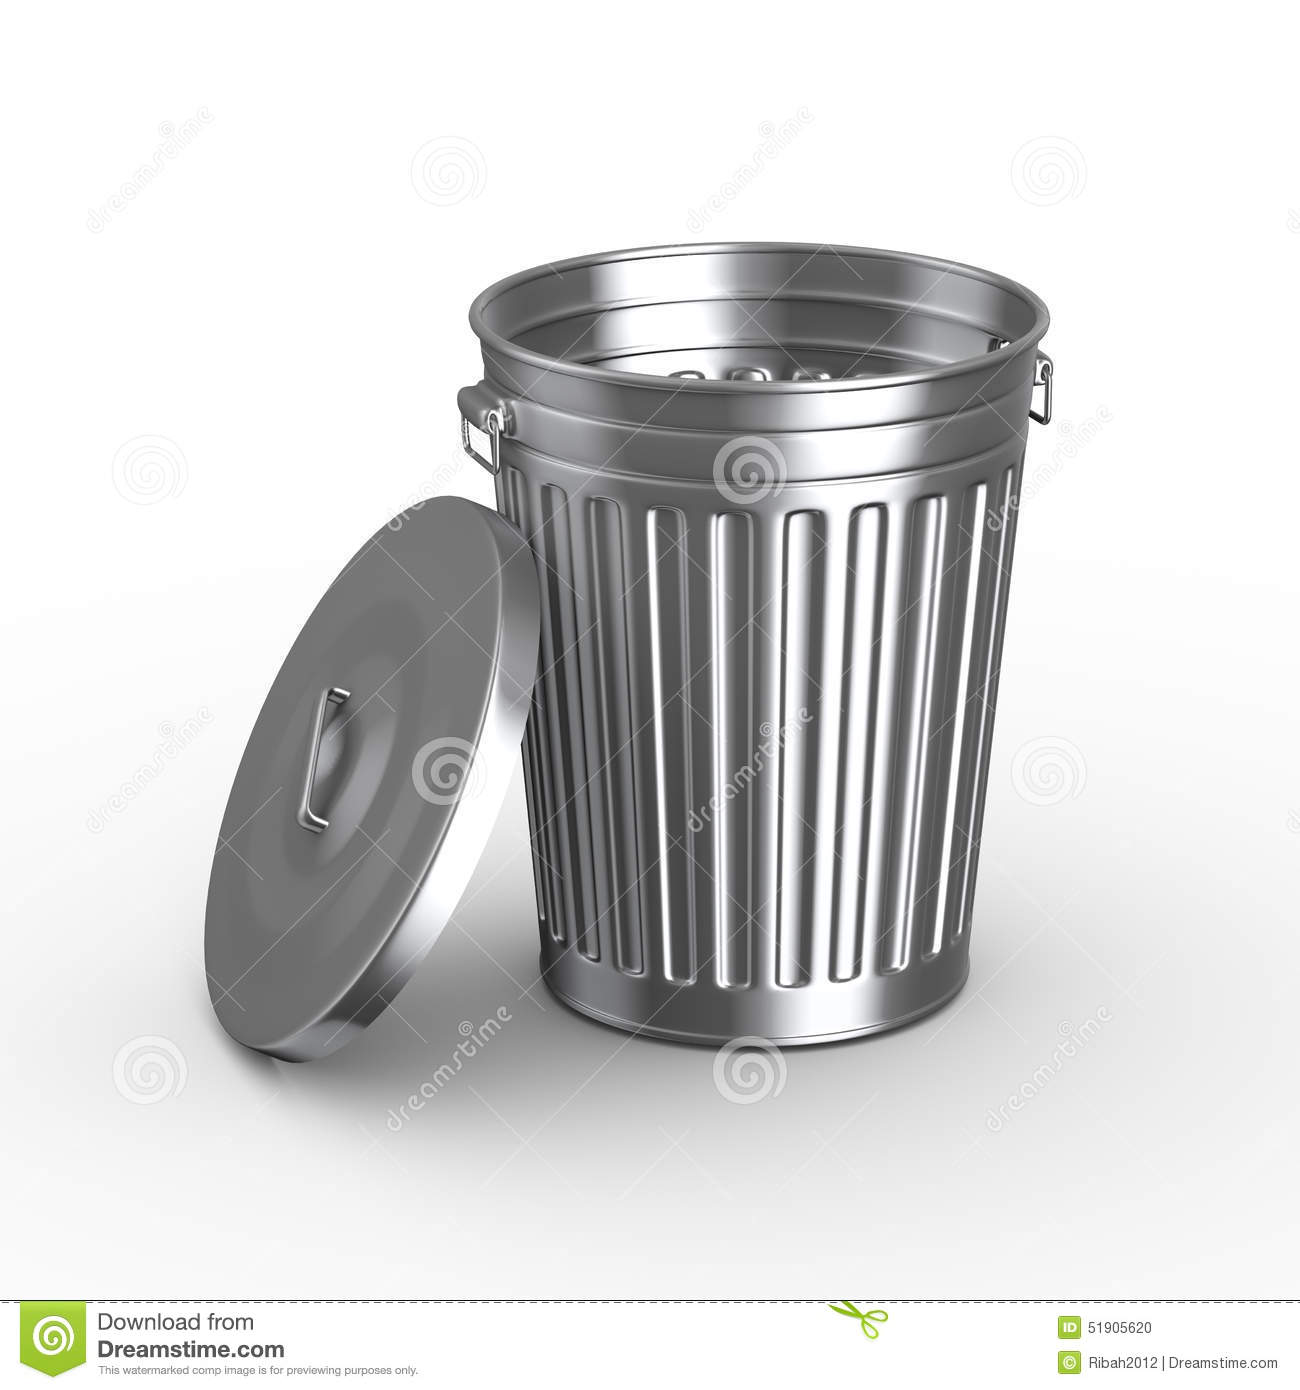 Aluminium Garbage Cans : D trash can bin with cover stock illustration image